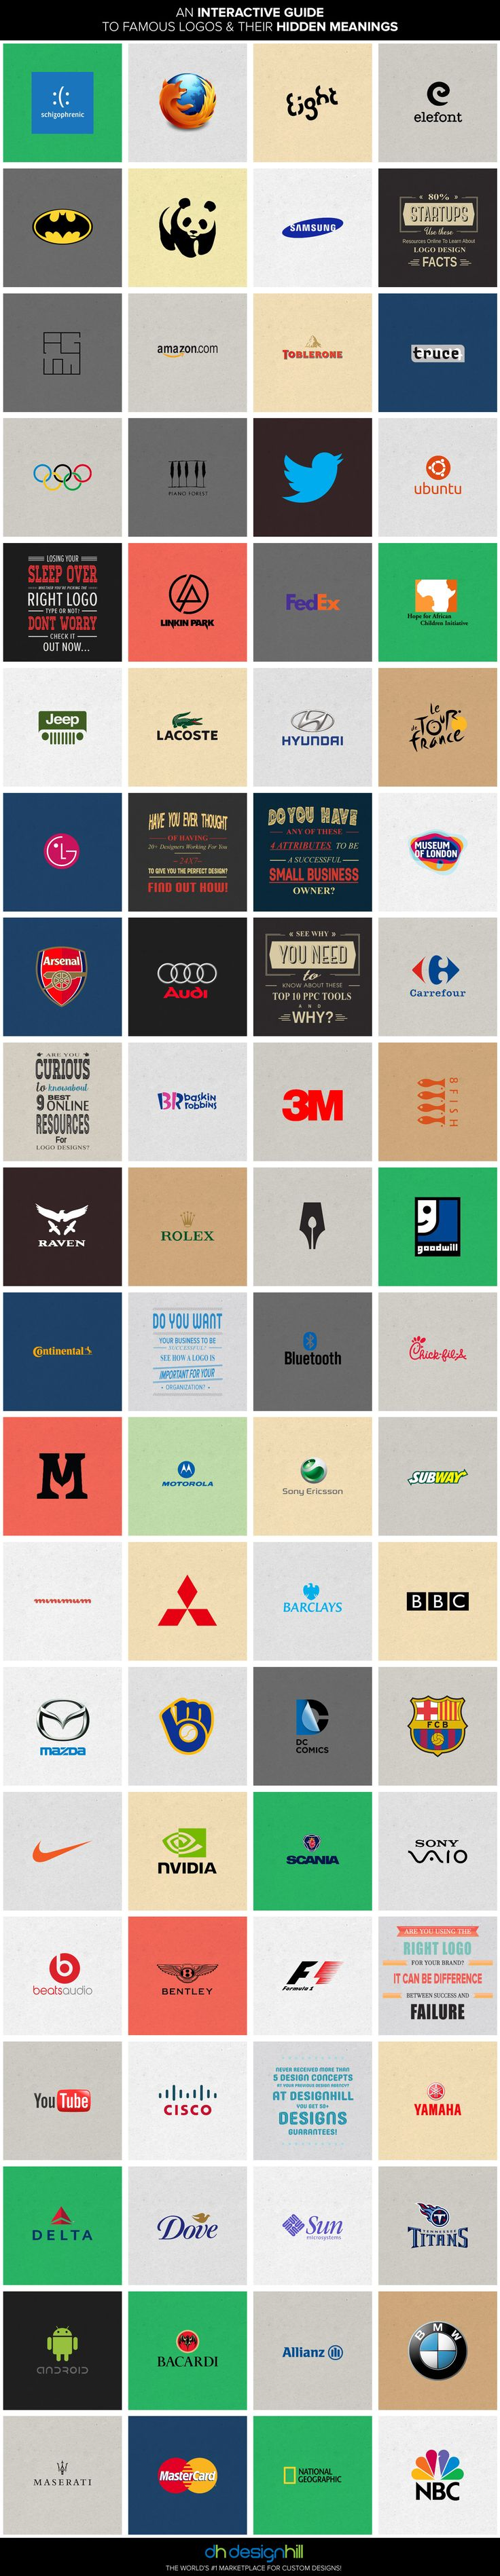 An Interactive Guide to Famous Logos & their Secret Meanings #dhlogofacts #logodesign